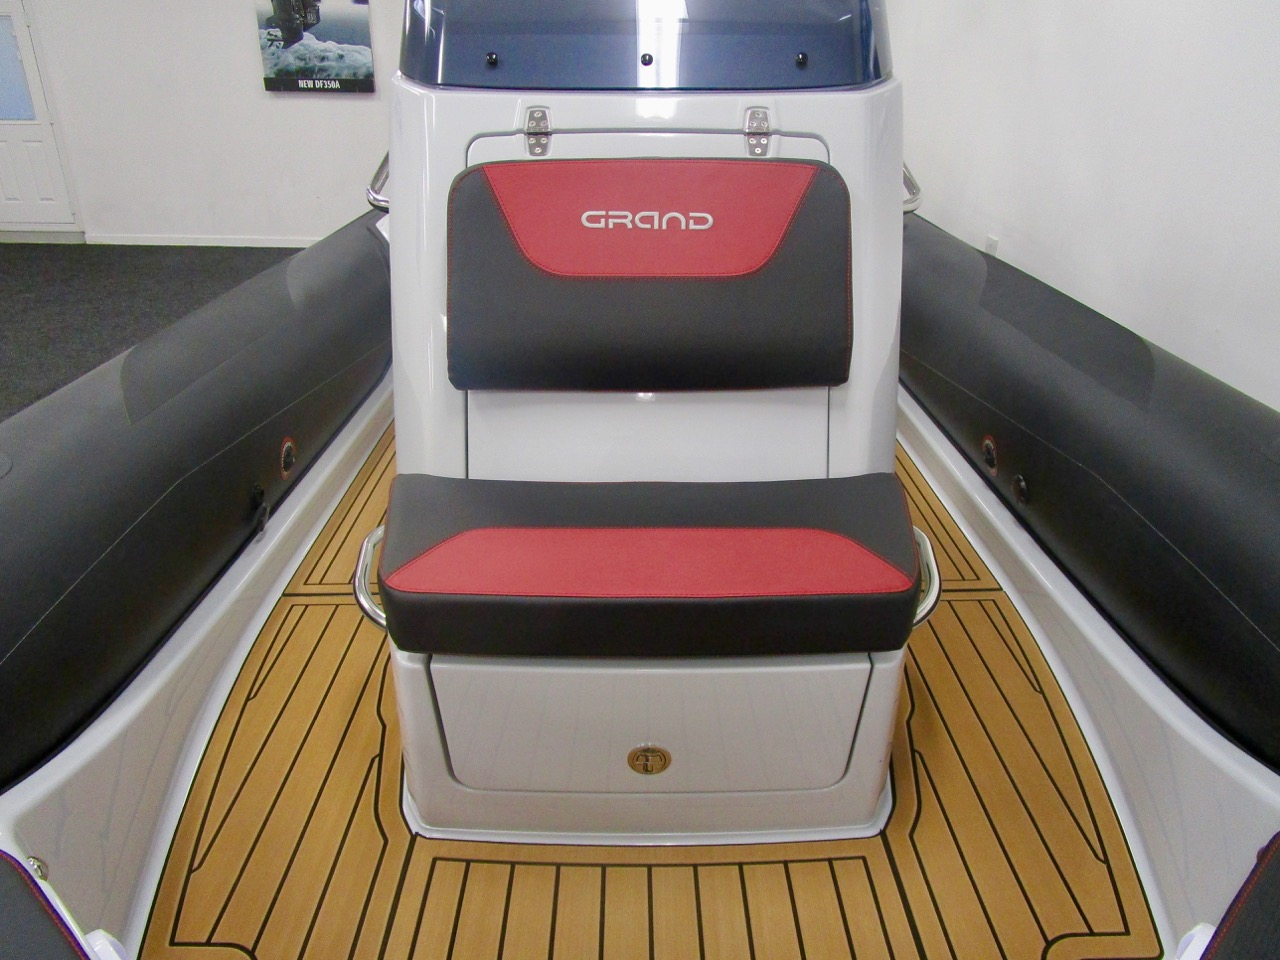 GRAND G750 RIB console front seat and grab handles